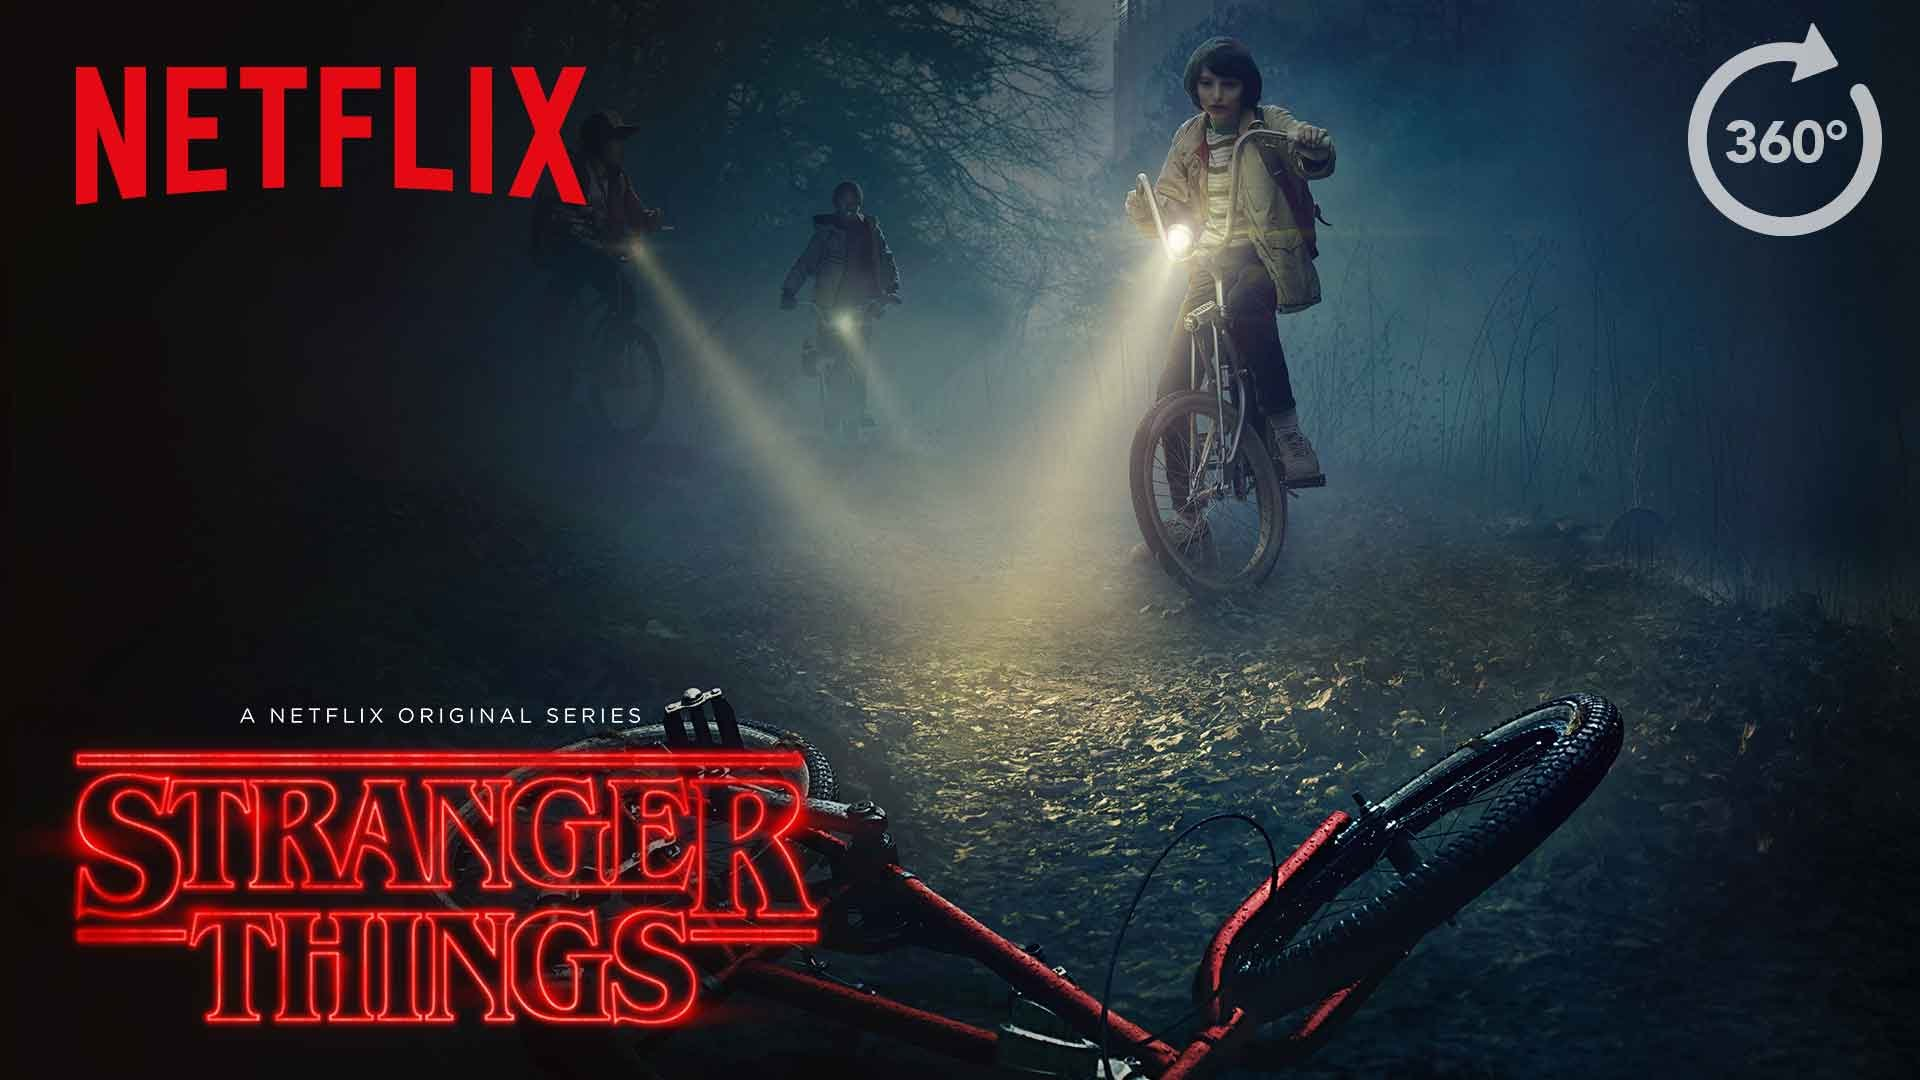 Stranger Things!